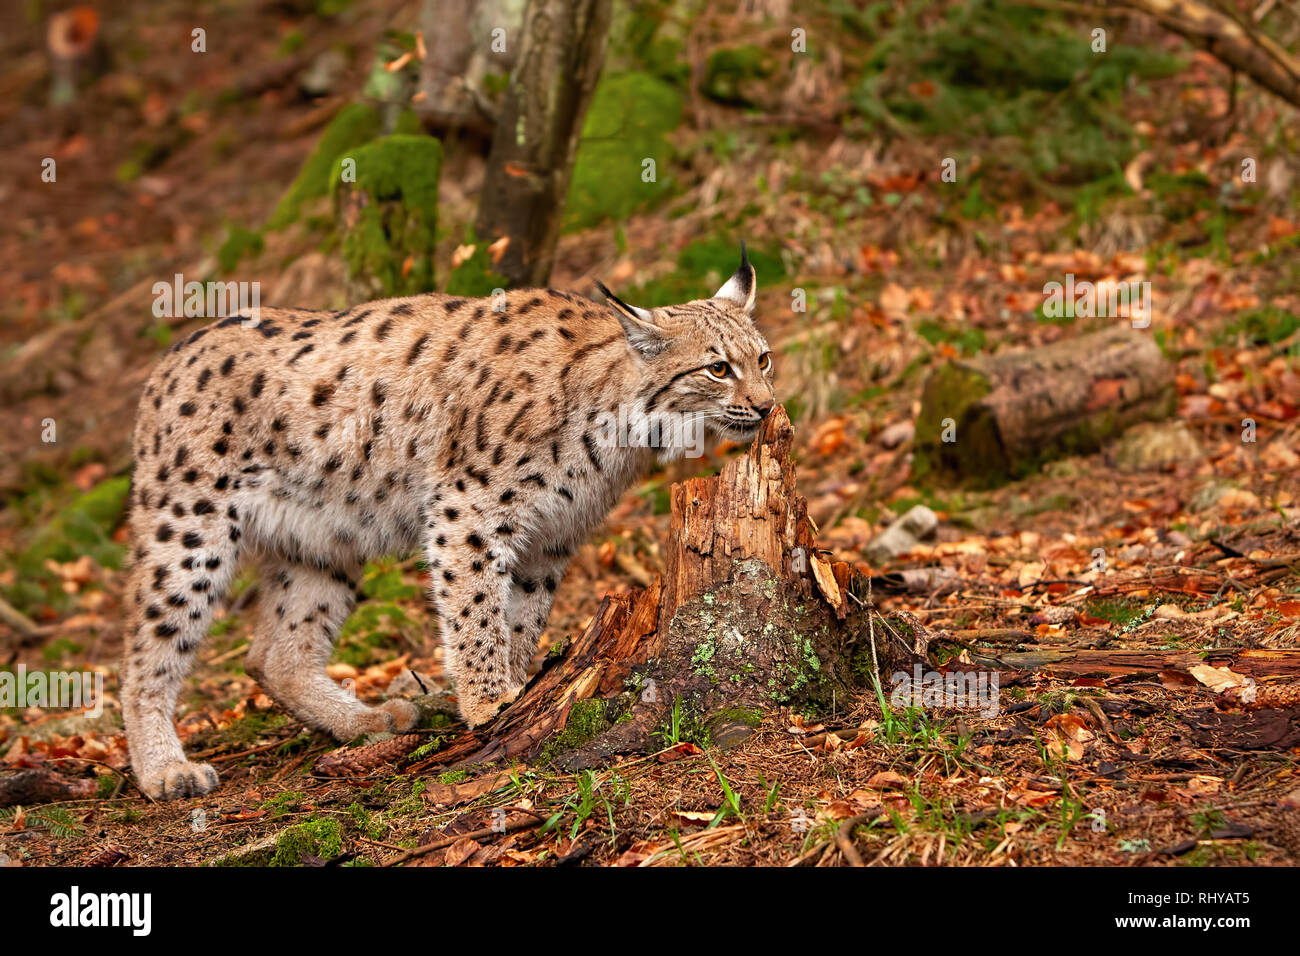 Eursian lynx in autmn forest with blurred background. Stock Photo